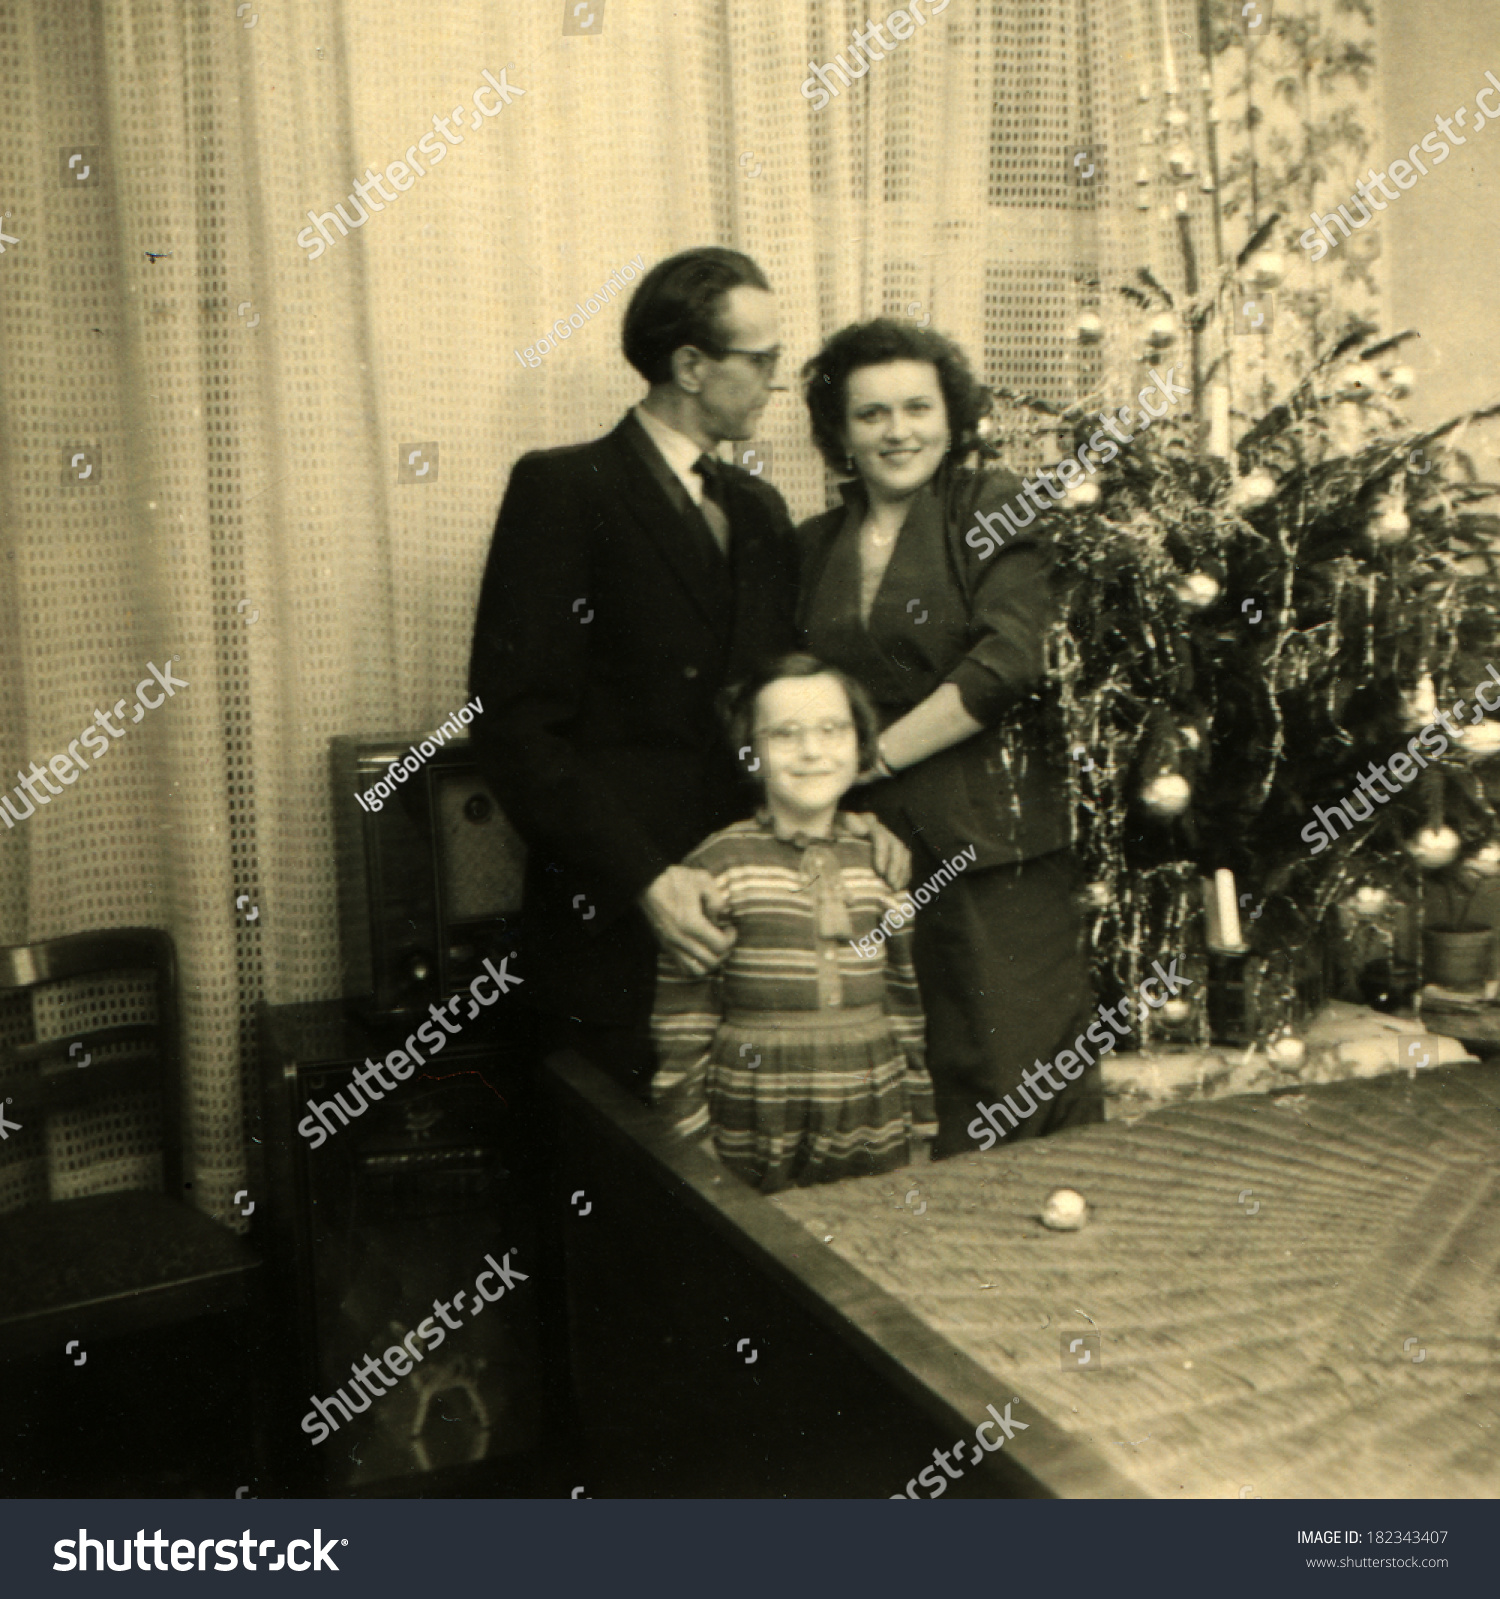 GERMANY - CIRCA 1950s: An antique photo of parents posing with his daughter  near Christmas